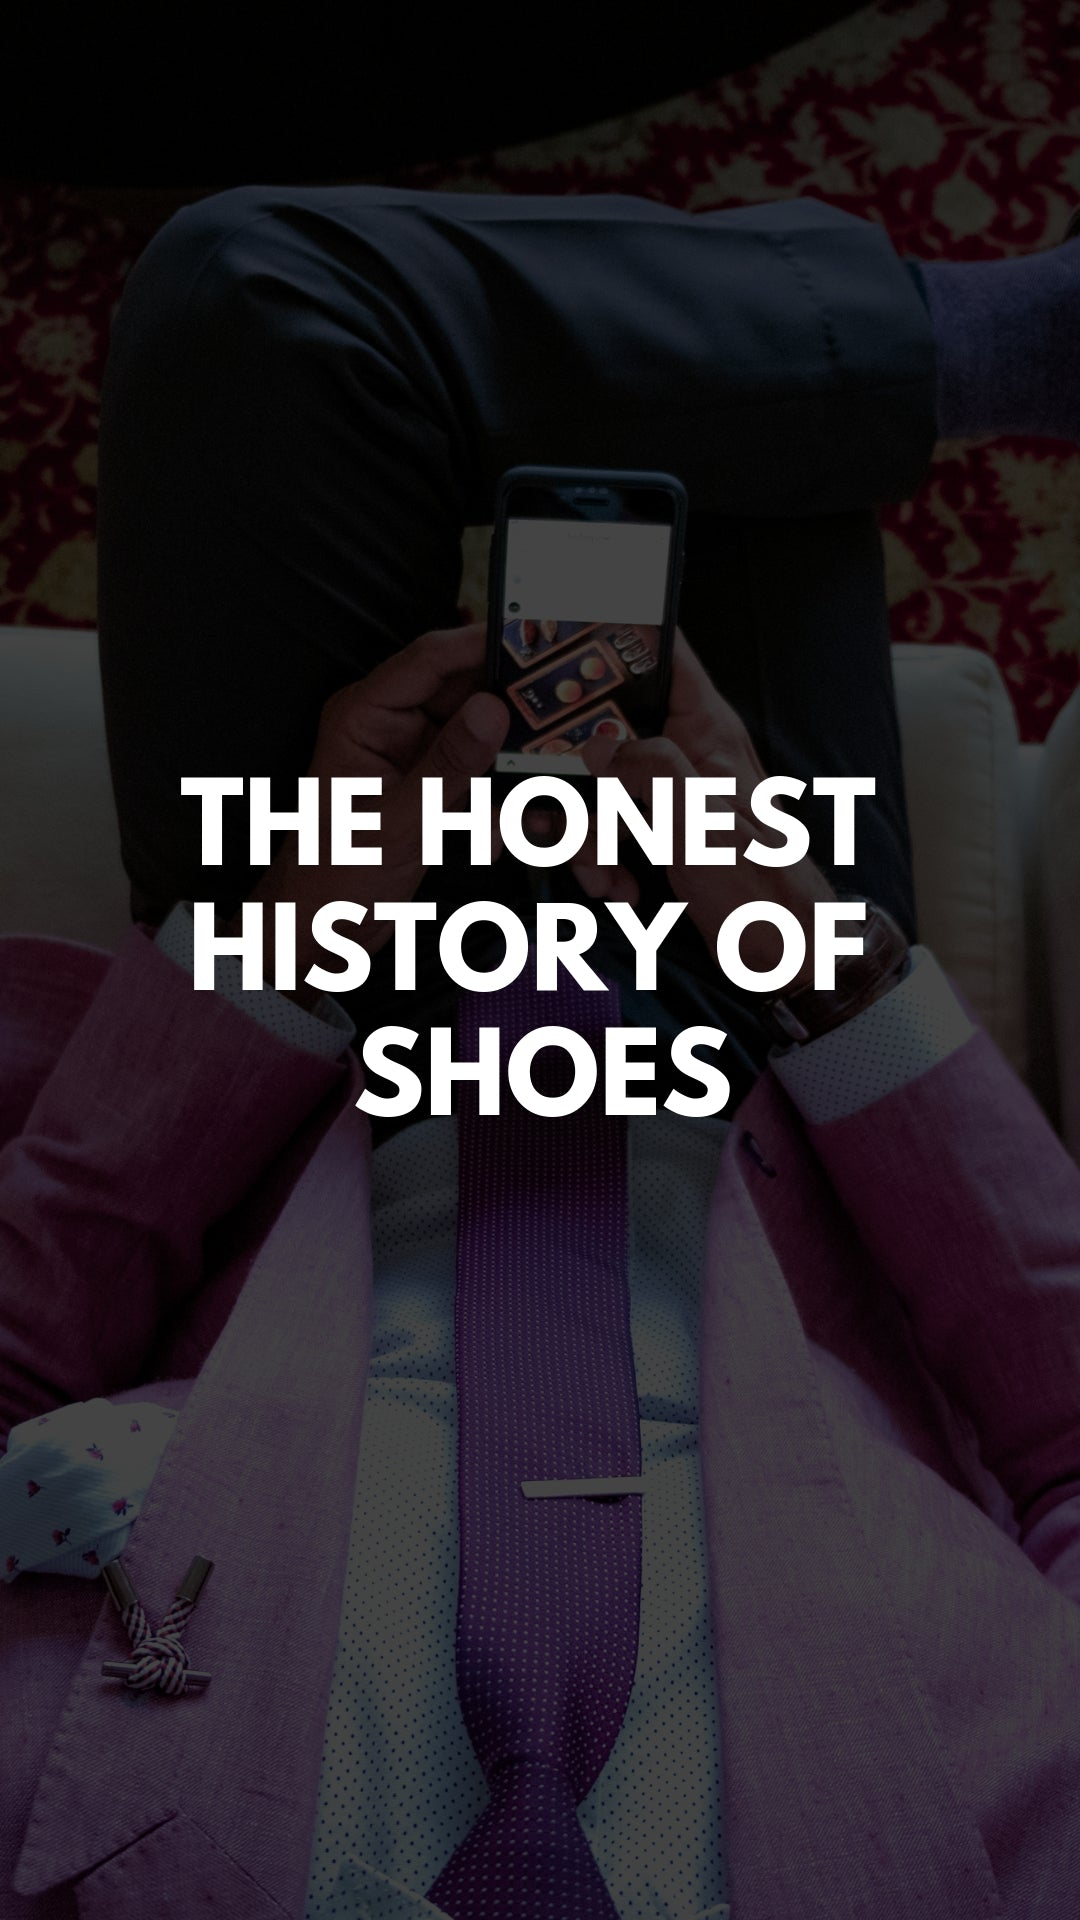 The Honest History of Shoes: The Ultimate Secret